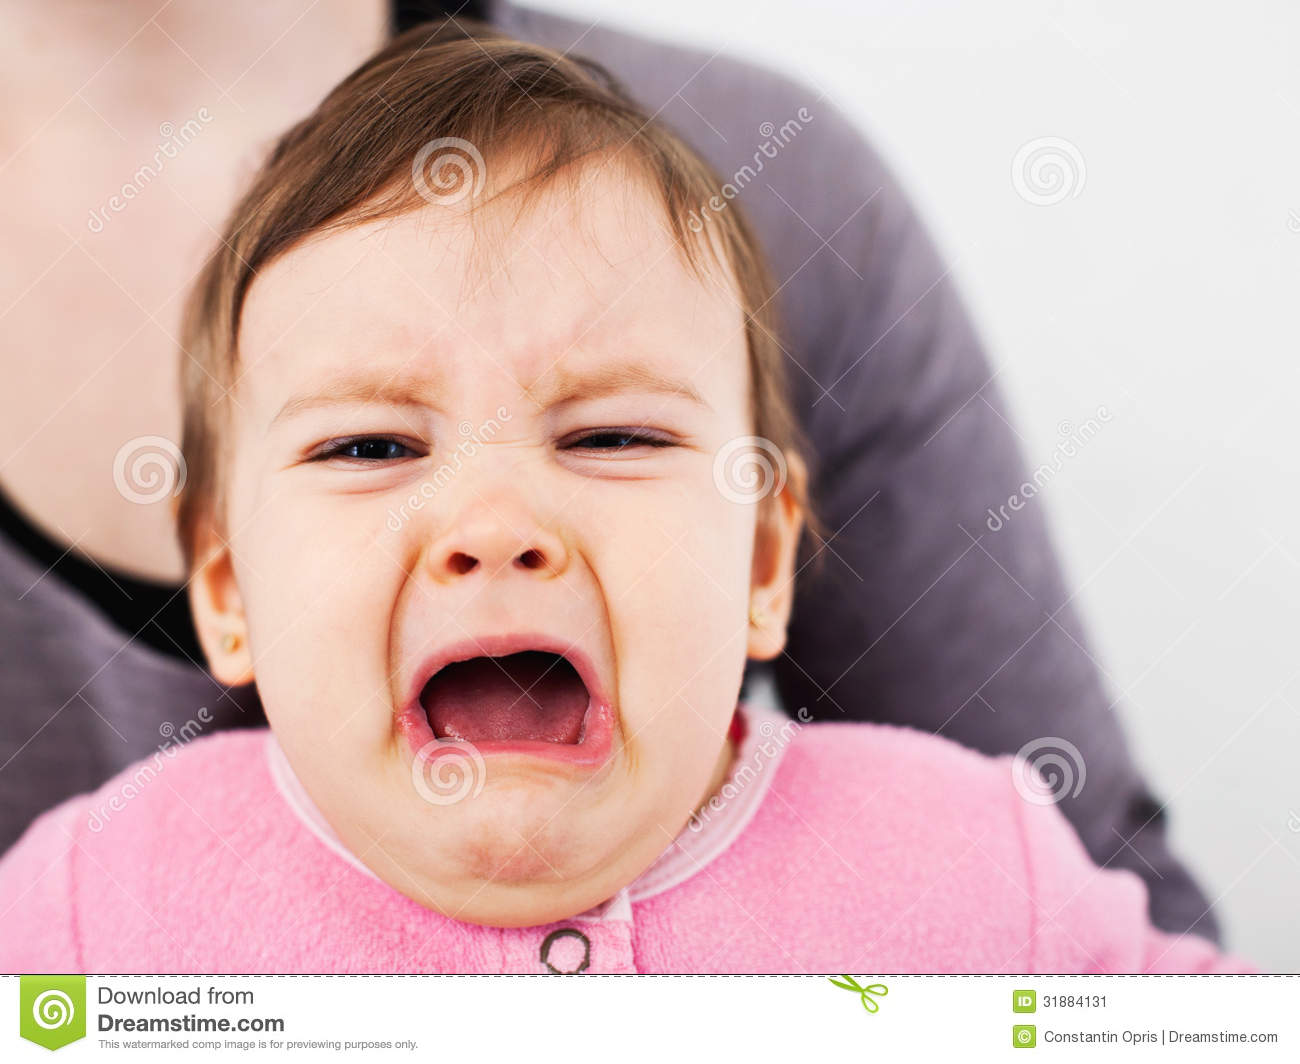 sad baby girl stock images - download 6,609 photos